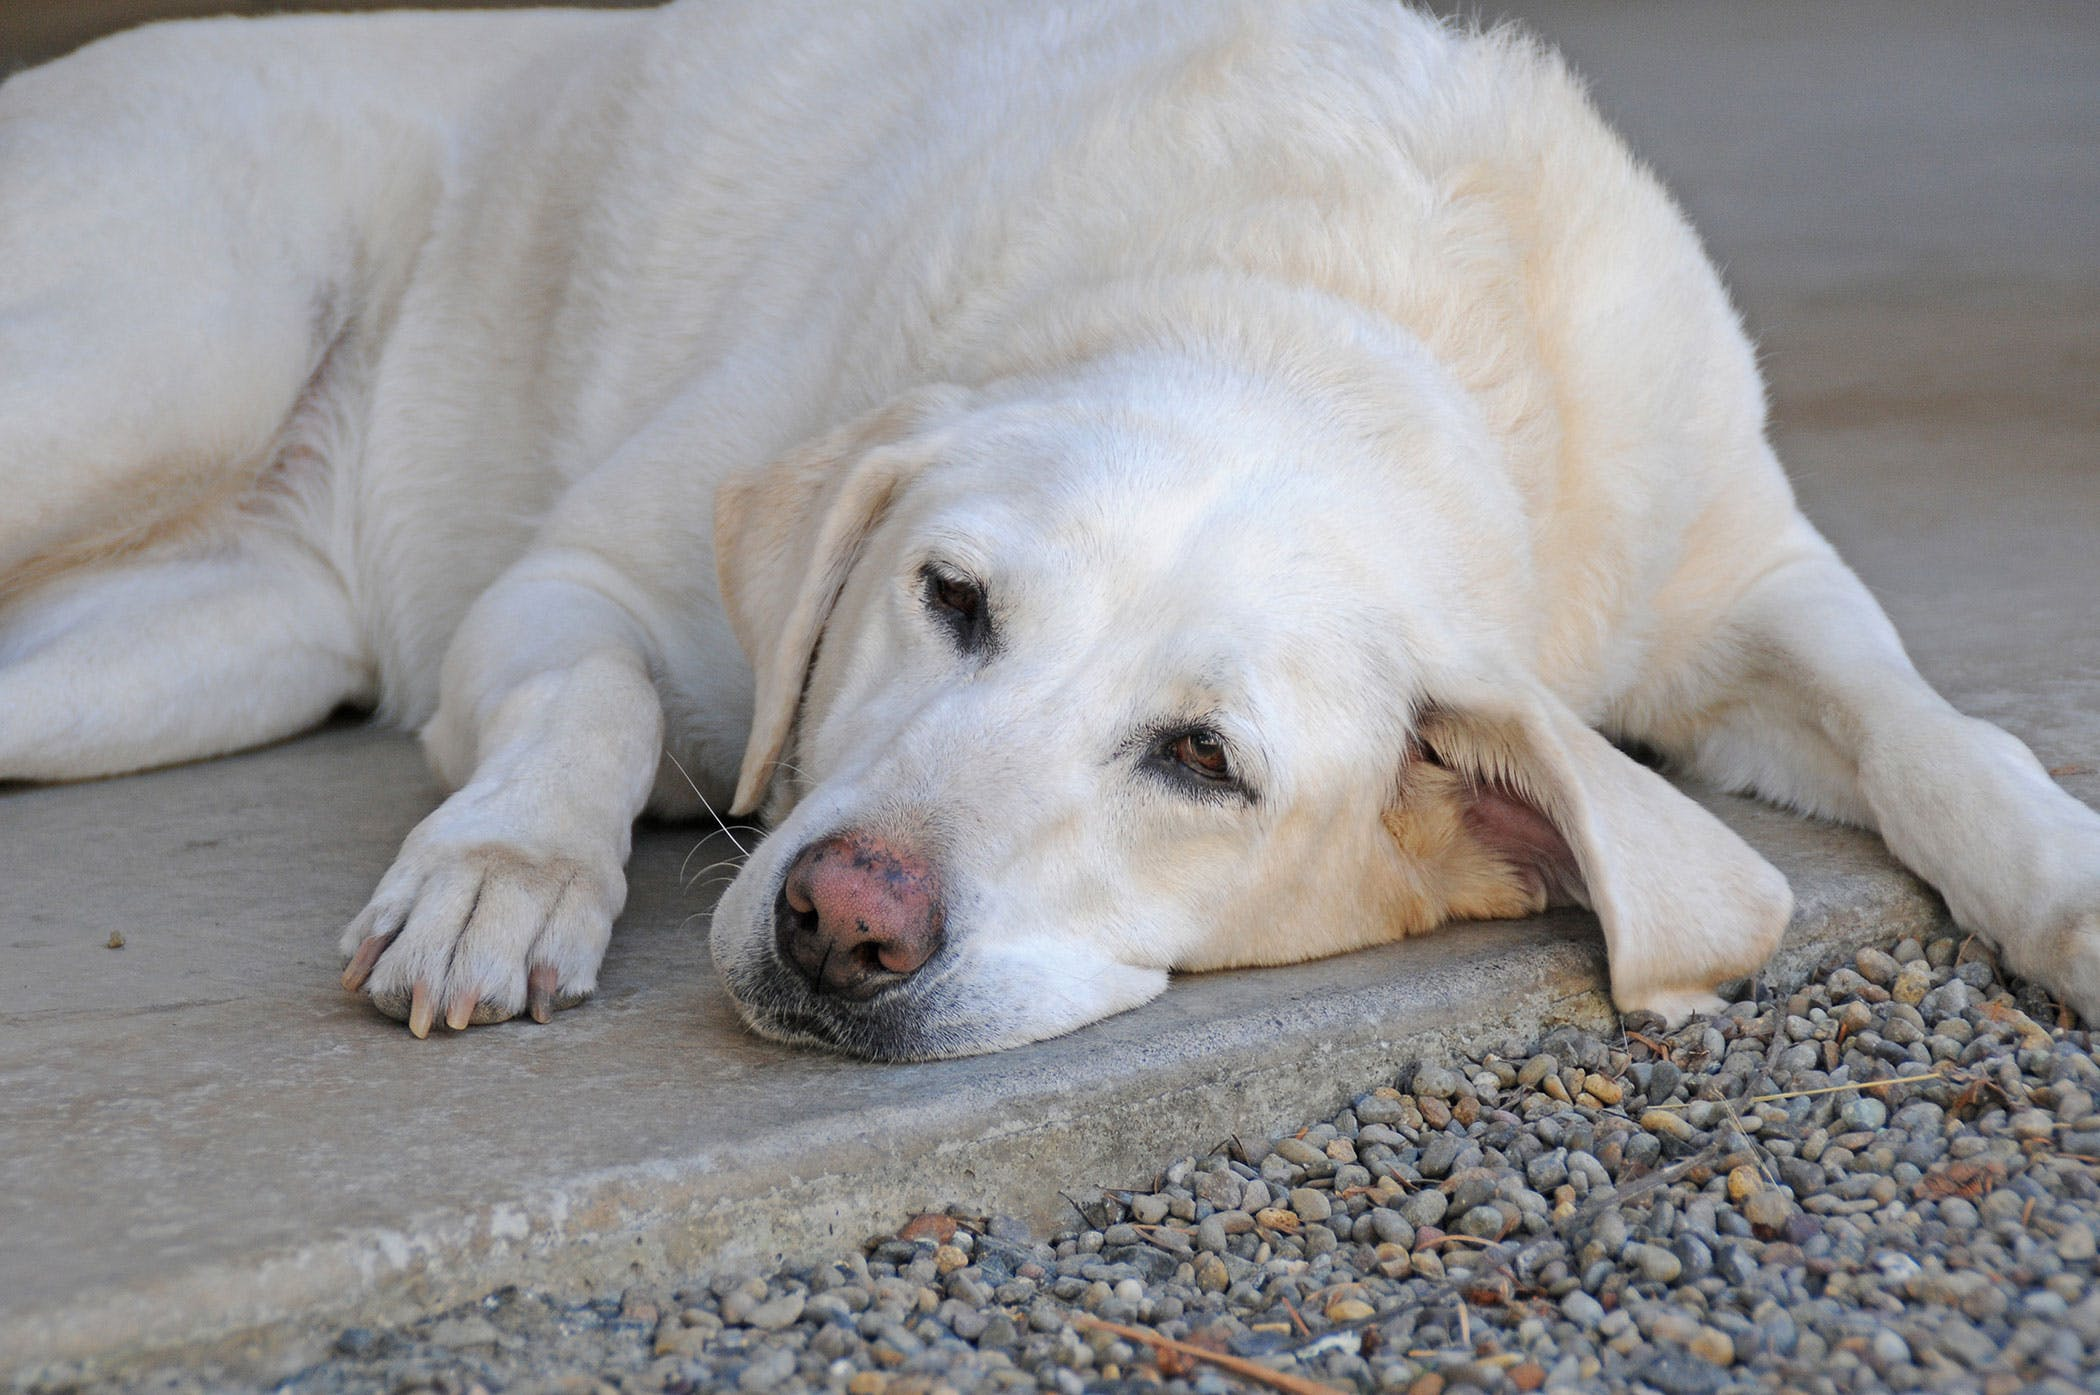 Poisoning in dogs: symptoms and consequences